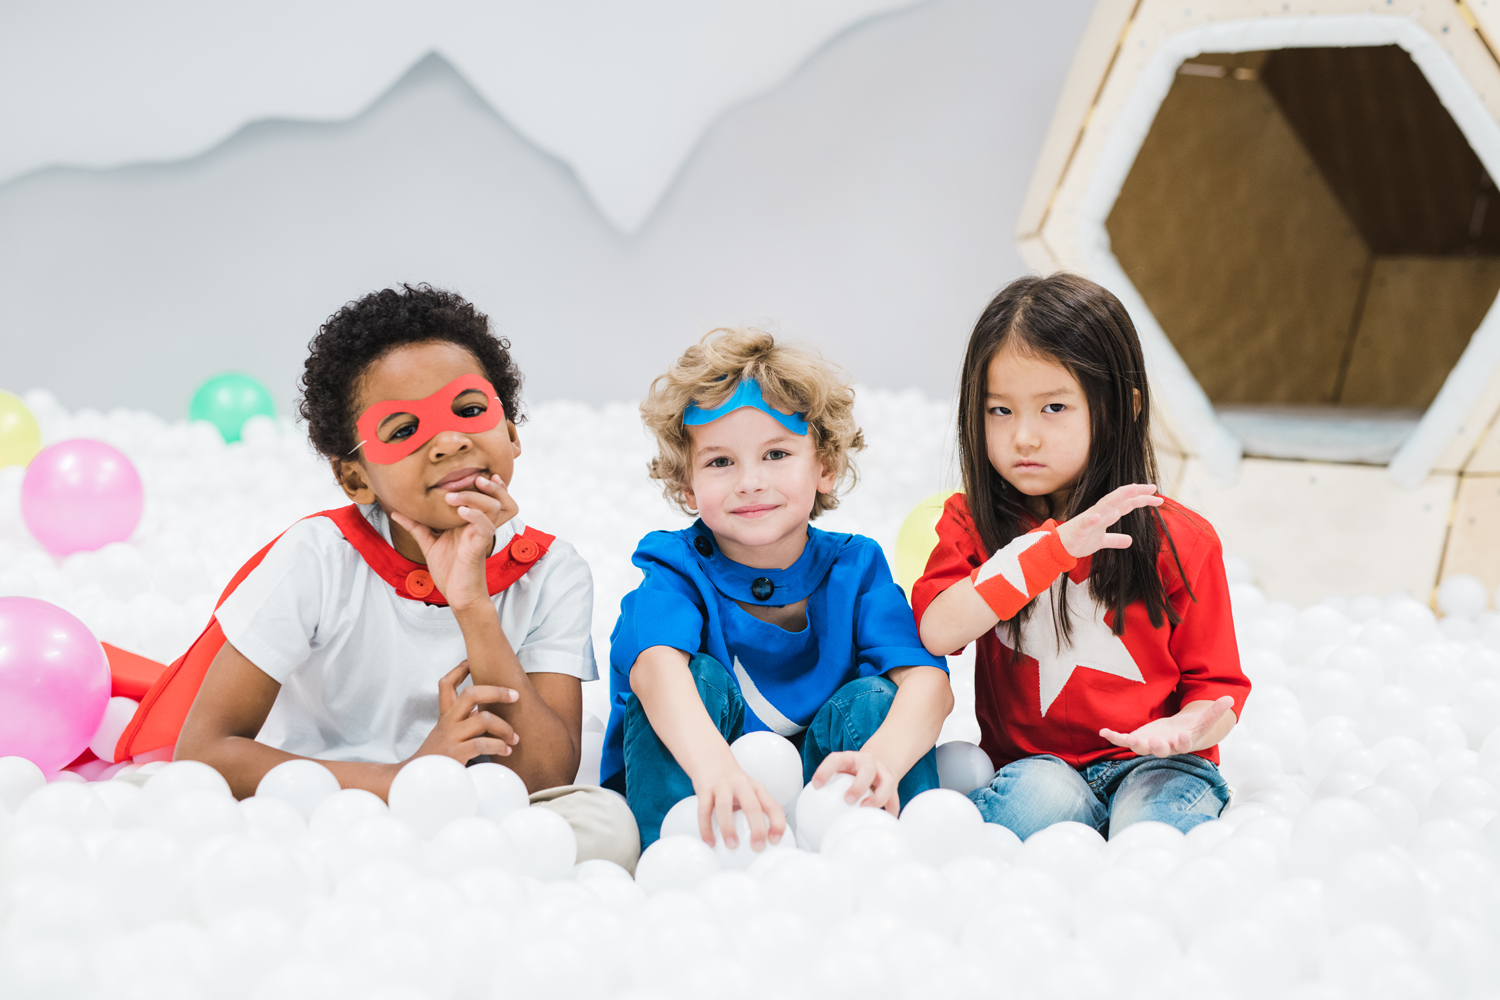 Transferring foster agency for different foster parents and children - Group of adorable little intercultural friends in costumes sitting in balloons